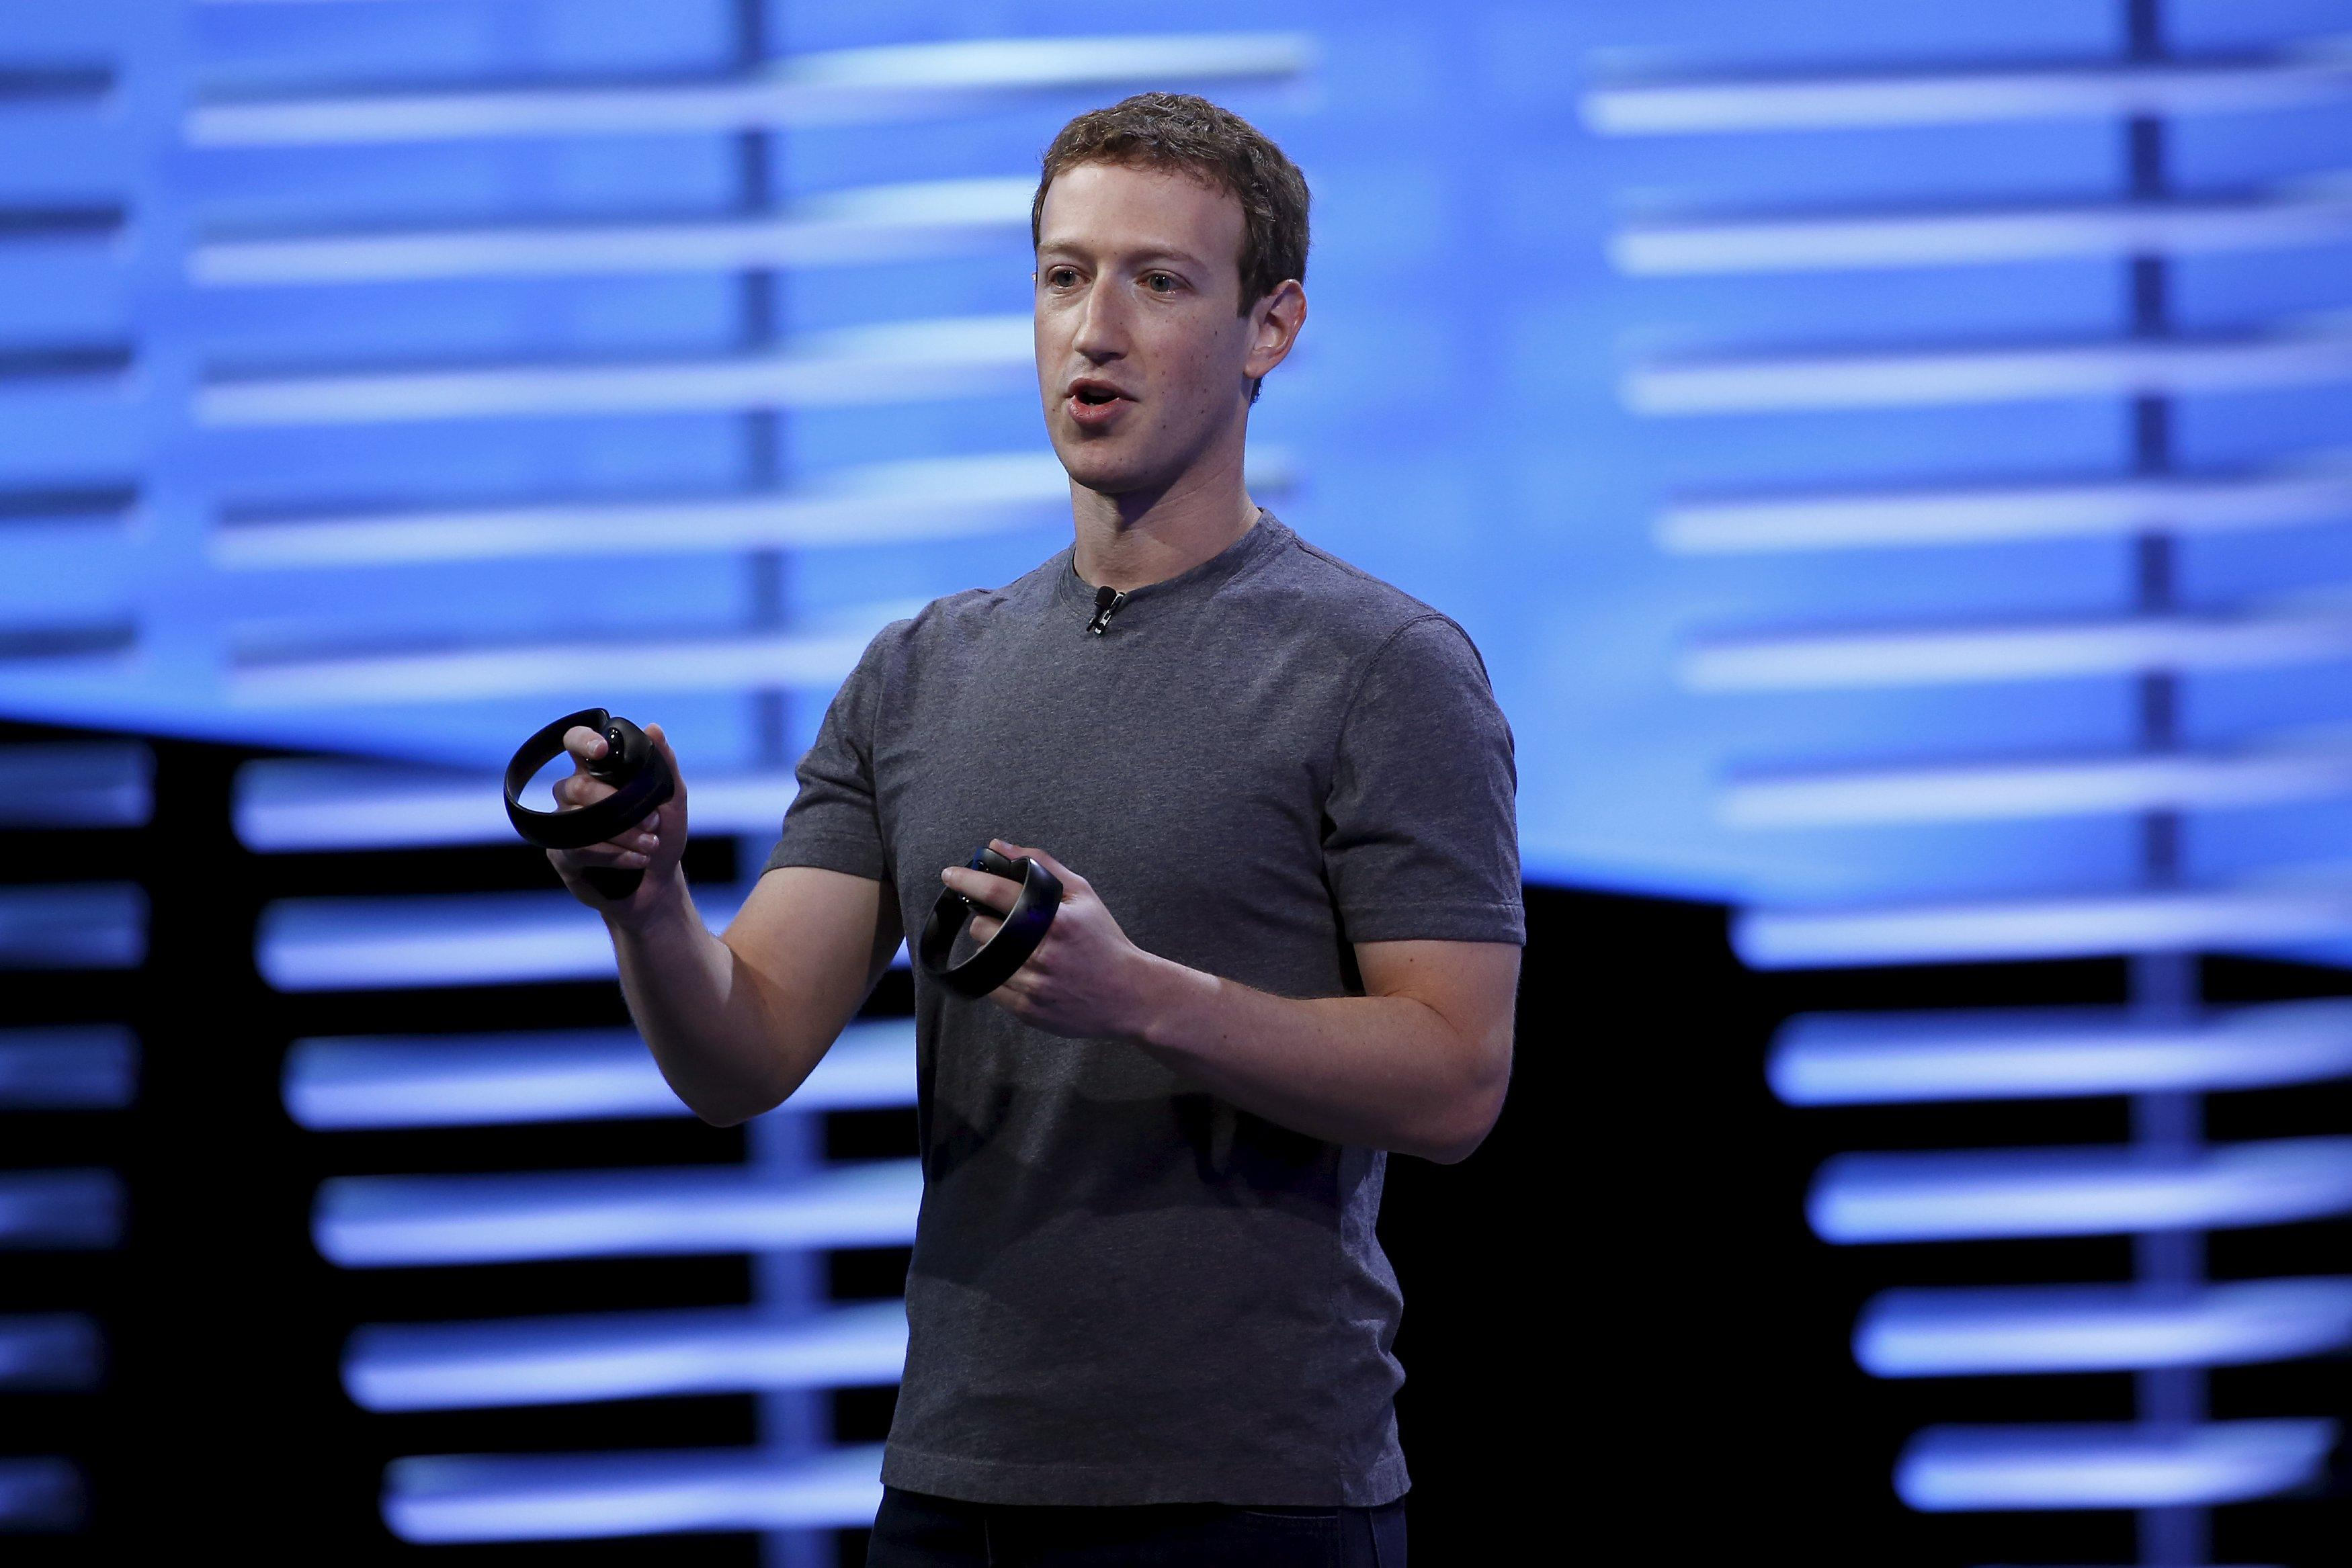 Blue apron yahoo finance - Midday Movers Facebook Earnings Yahoo S Board Shakeup And Alibaba S Investments Video